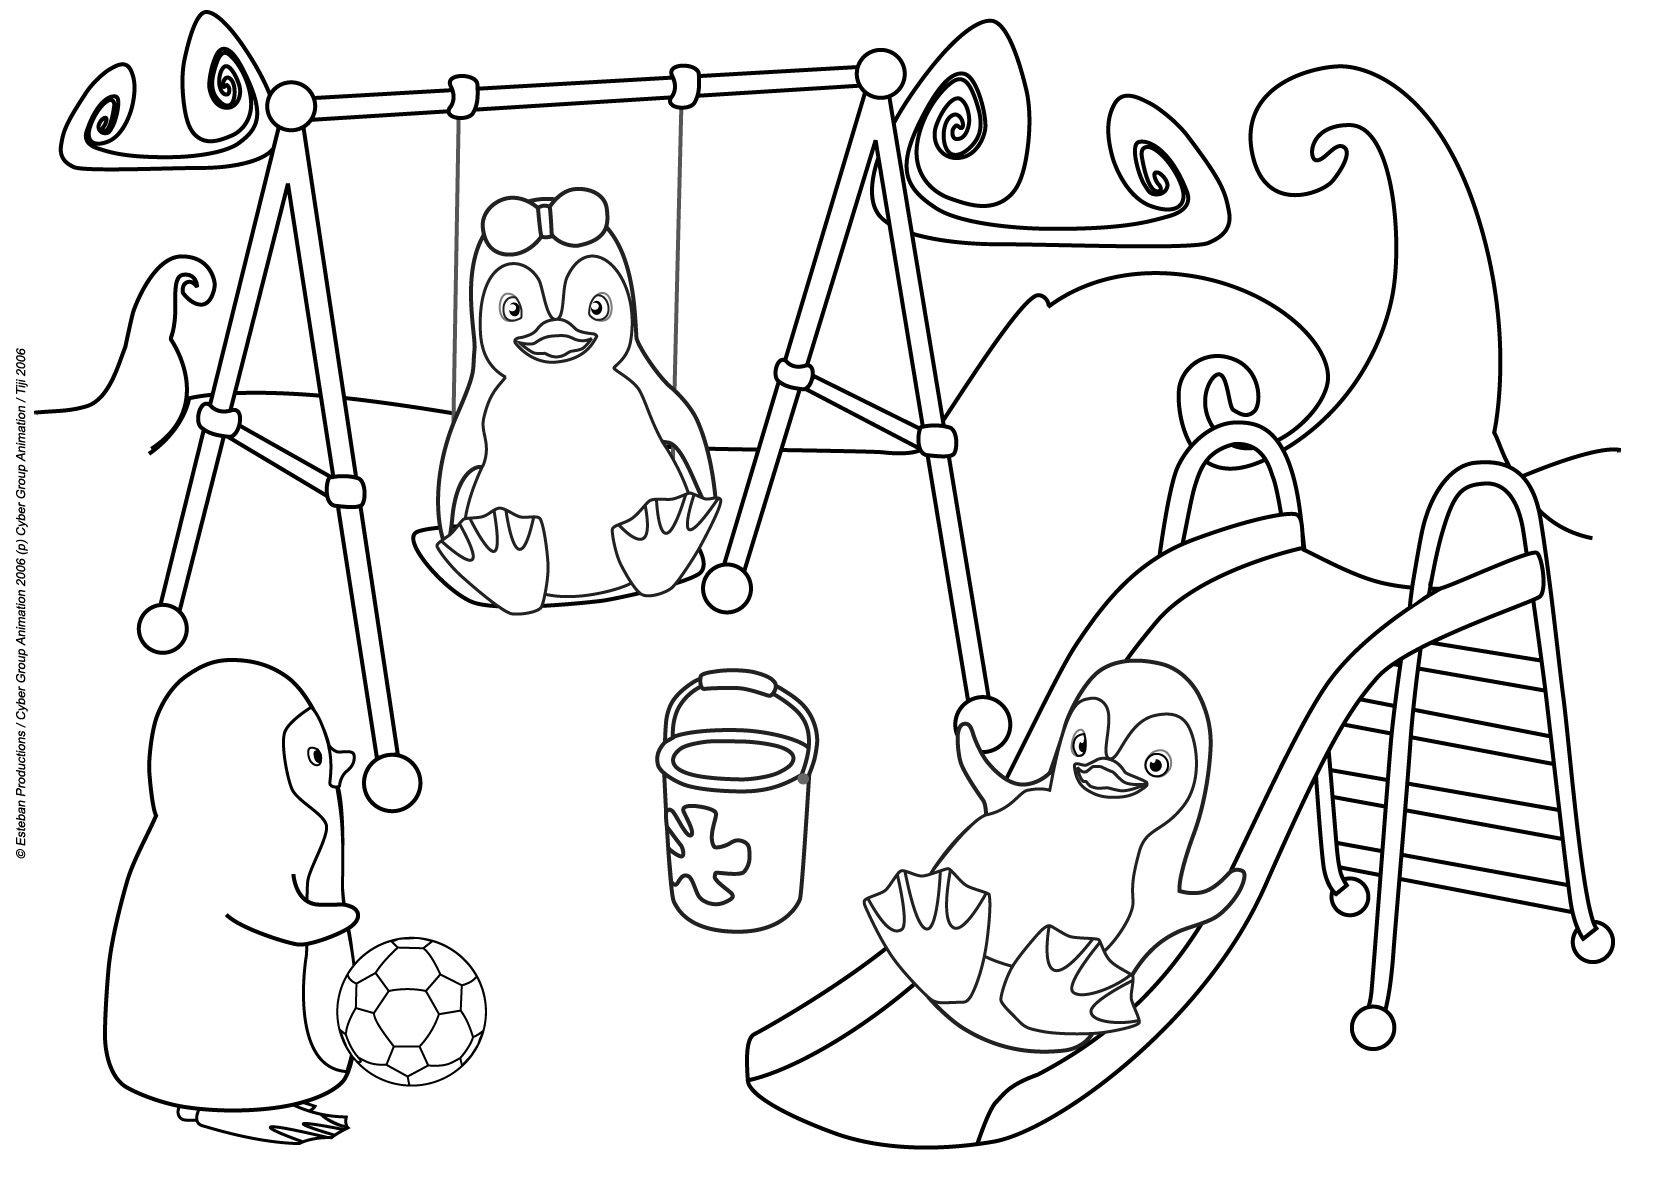 Pin By Georgina Kincaid On Coloriages Animaux Enfantins Cute Coloring Pages Coloring Pages Online Coloring Pages